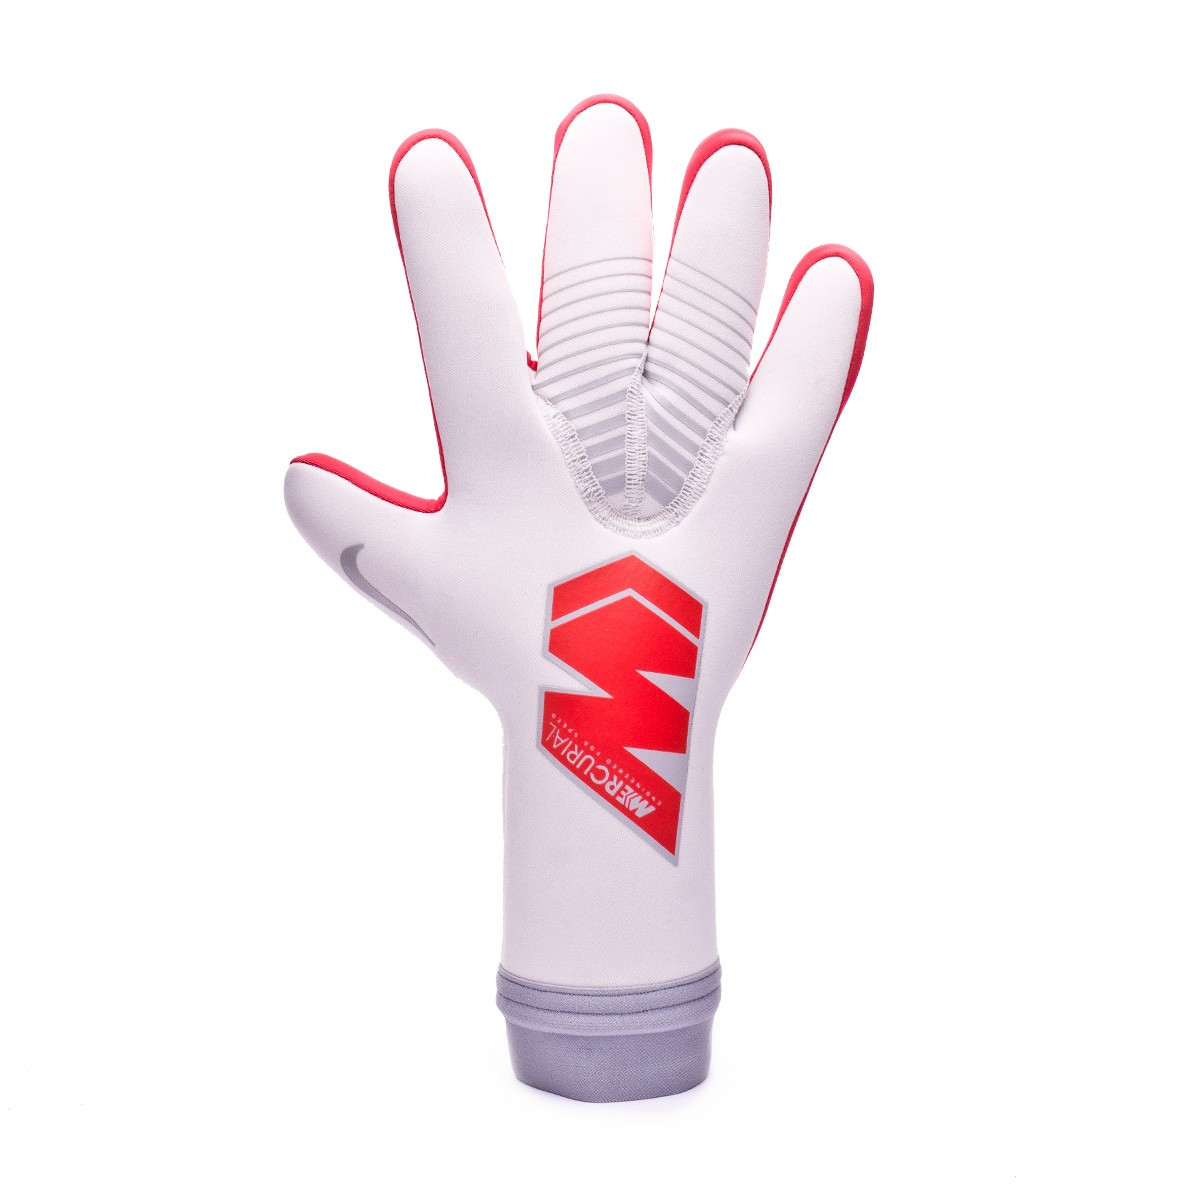 22a974f16d128 Glove Nike Mercurial Touch Victory Pure platinum-Light crimson - Football  store Fútbol Emotion